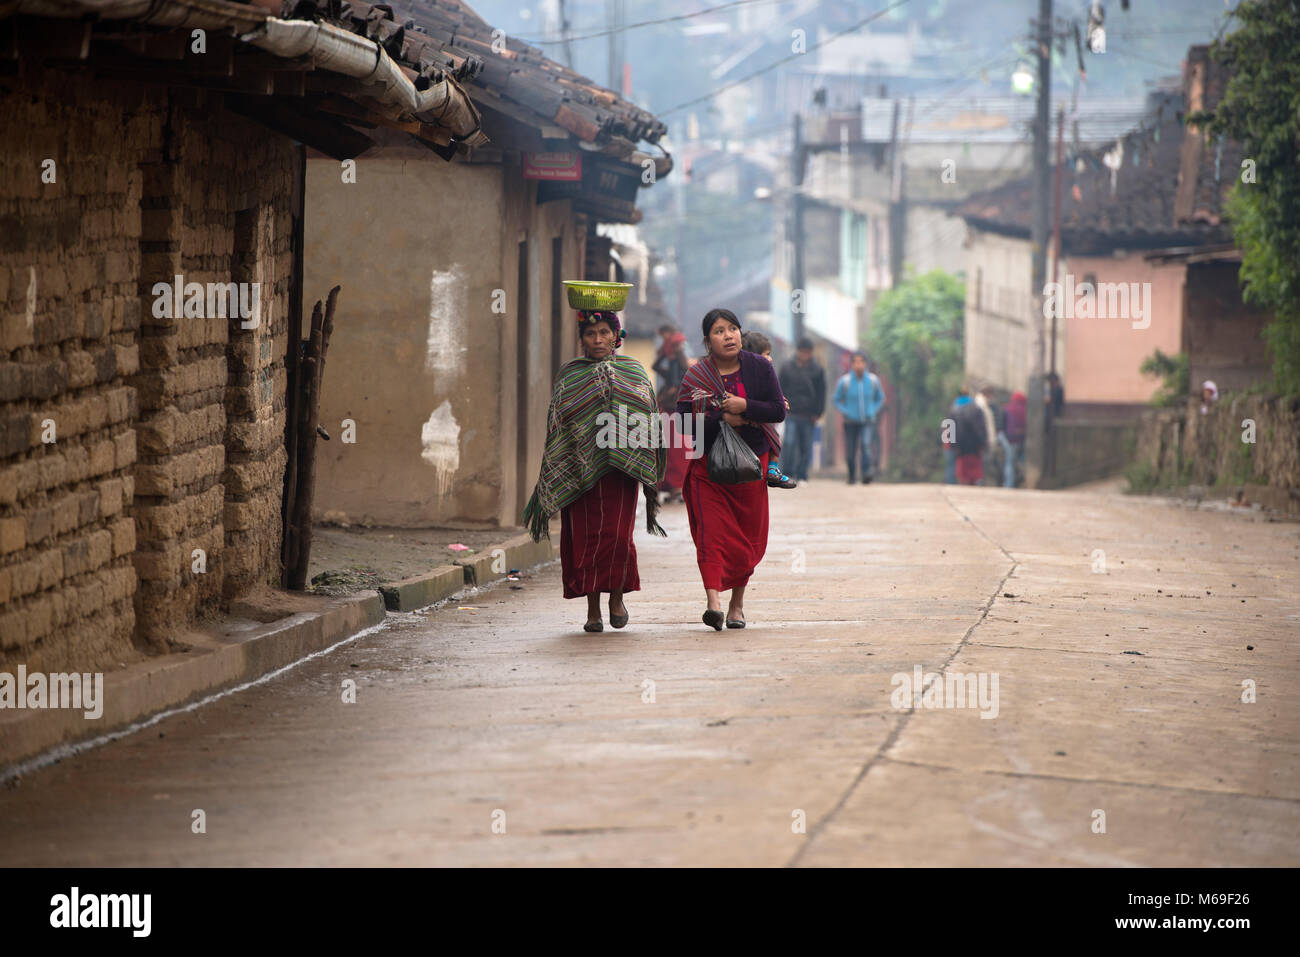 Ethnic, indigenous Ixil Maya women in traditional clothing walking home along the street in the rain in San Gaspar - Stock Image